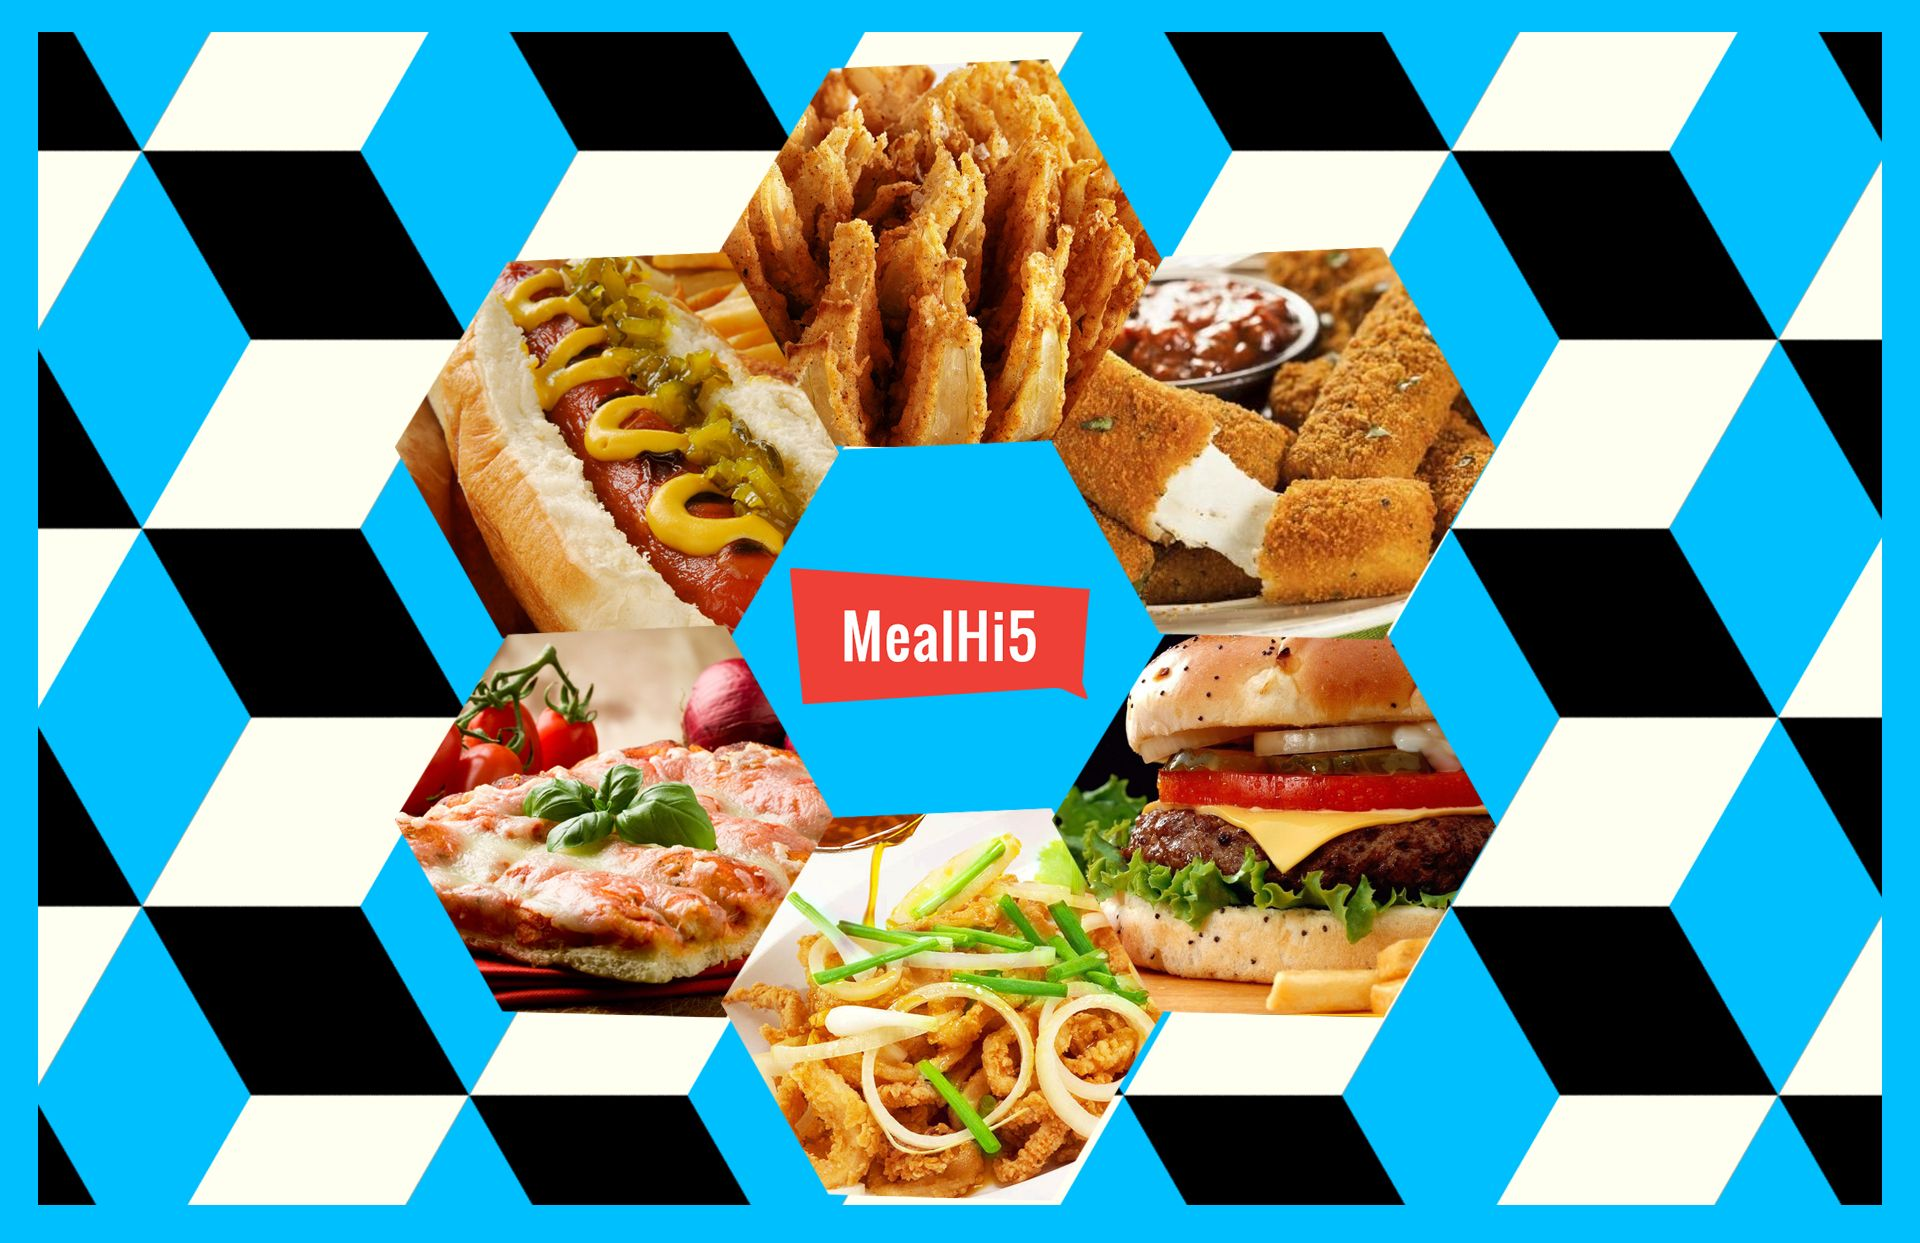 Mealhi5 online ordering system where you find indian